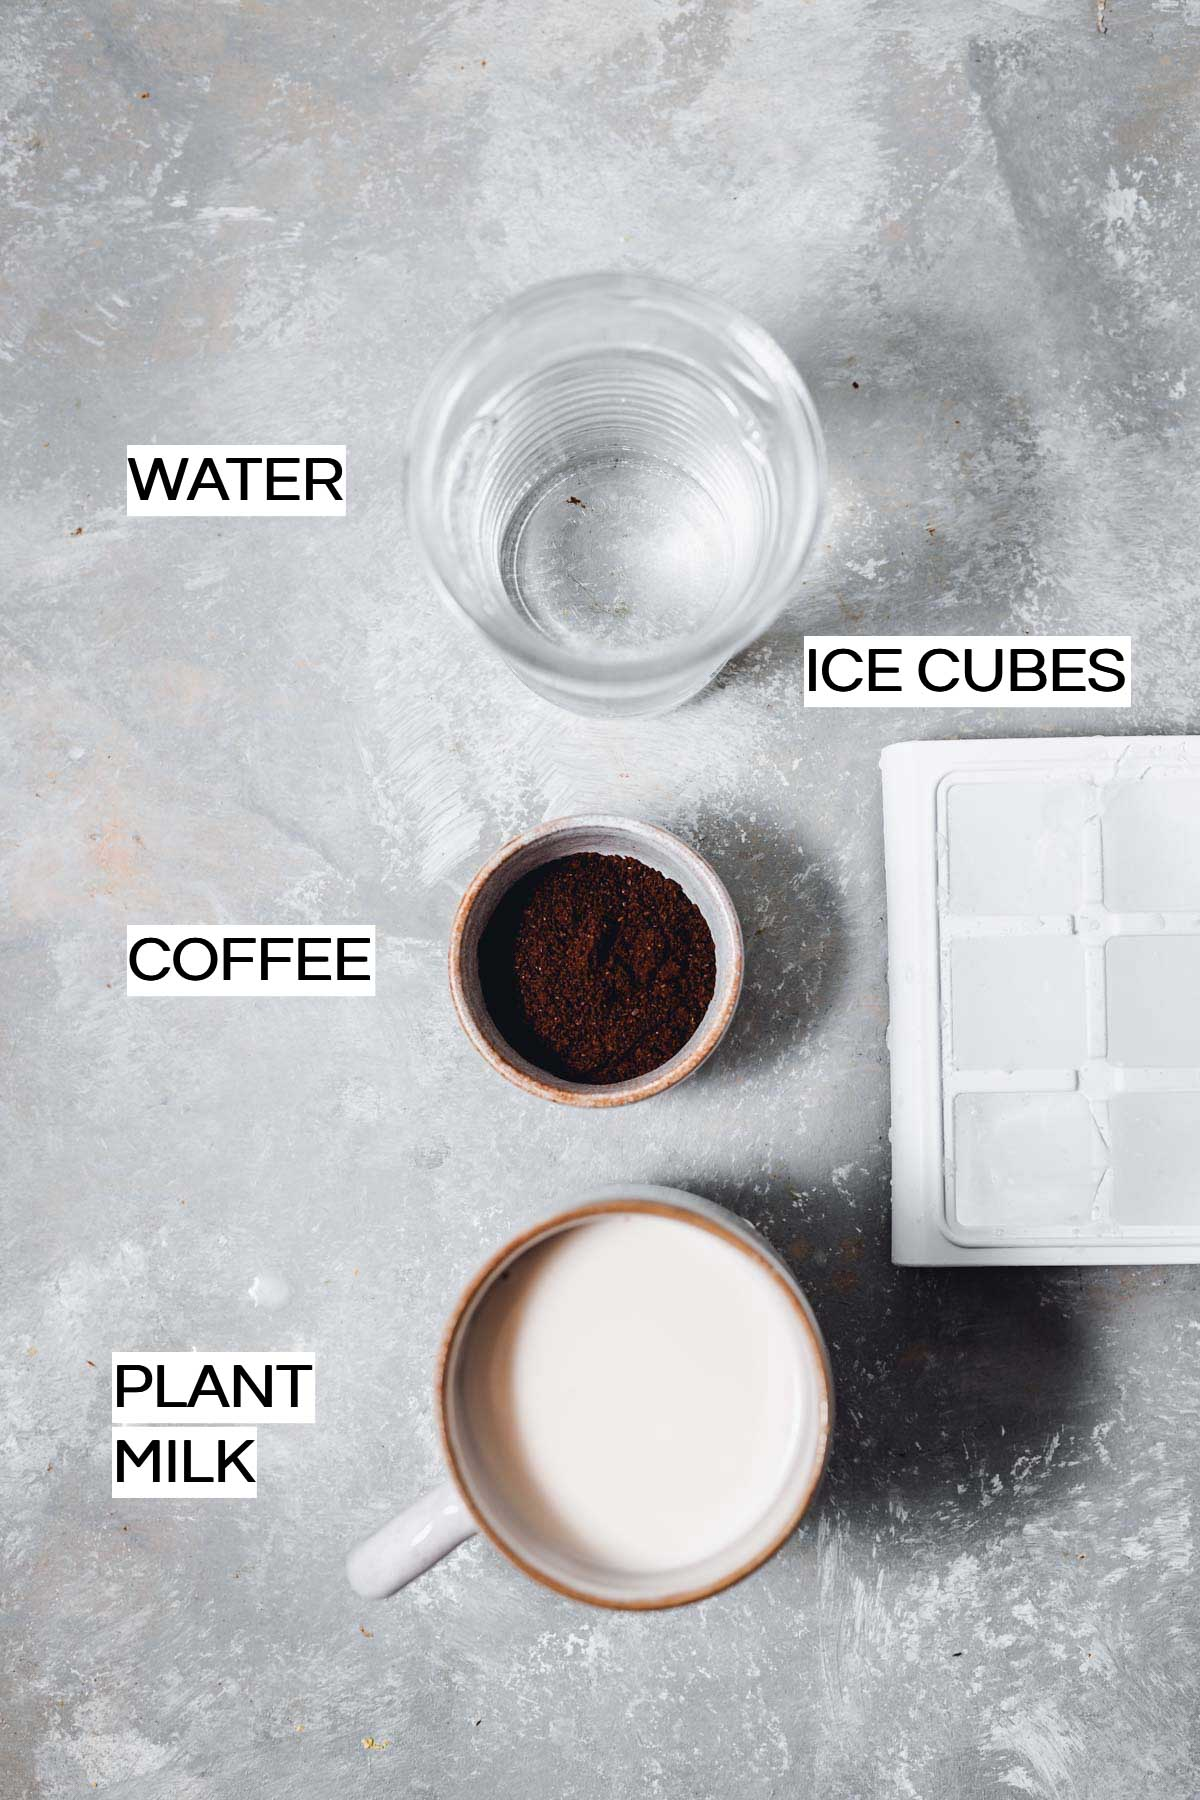 Water, coffee, plant milk and ice cubes laid out on a flat grey surface.